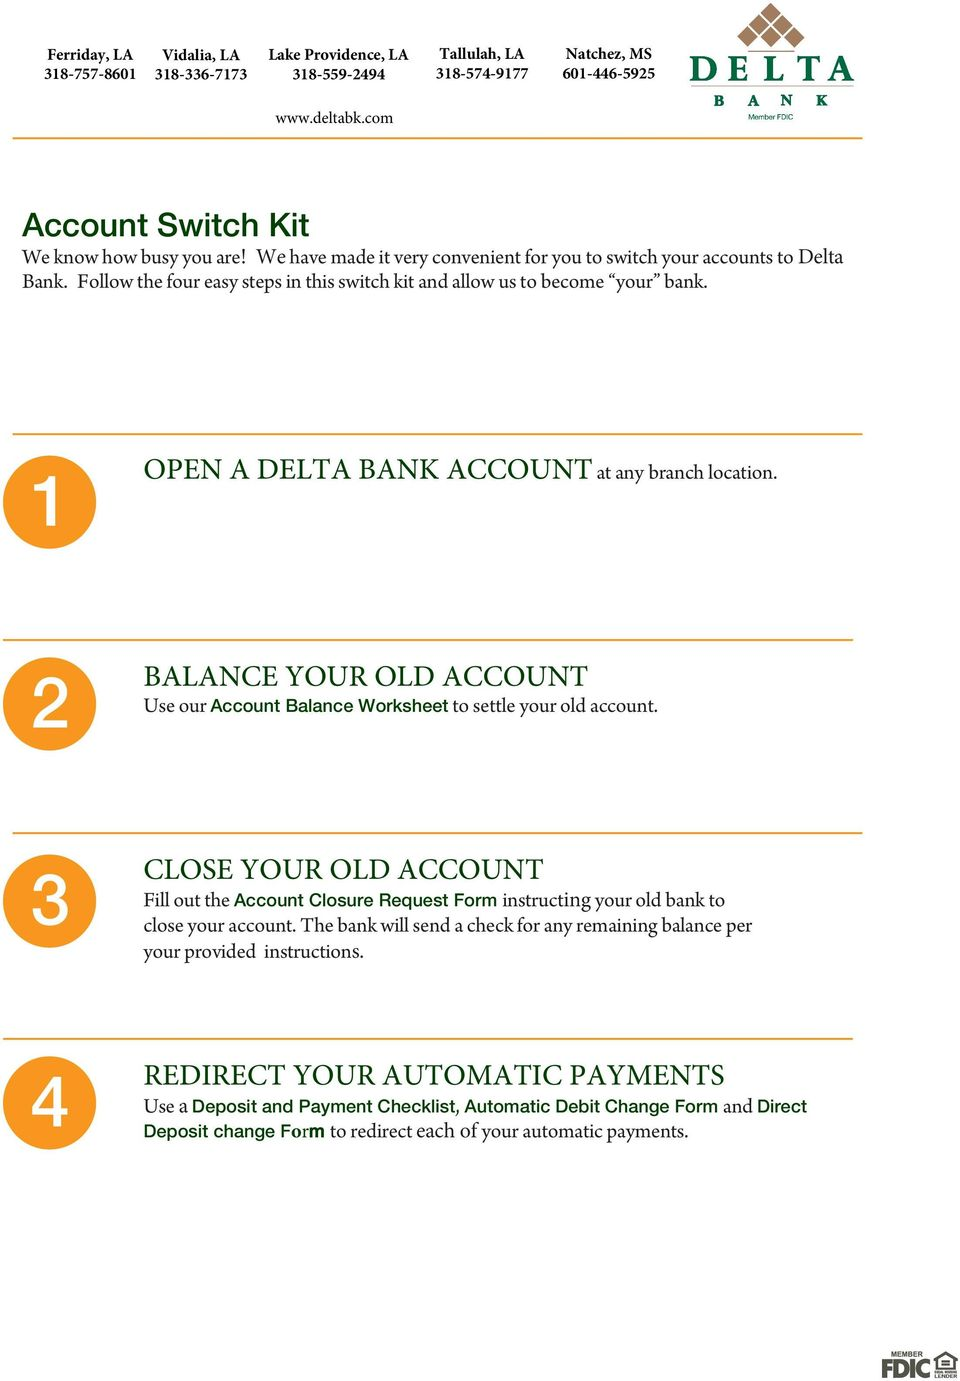 2 BALANCE YOUR OLD ACCOUNT Use our Account Balance Worksheet to settle your old account.